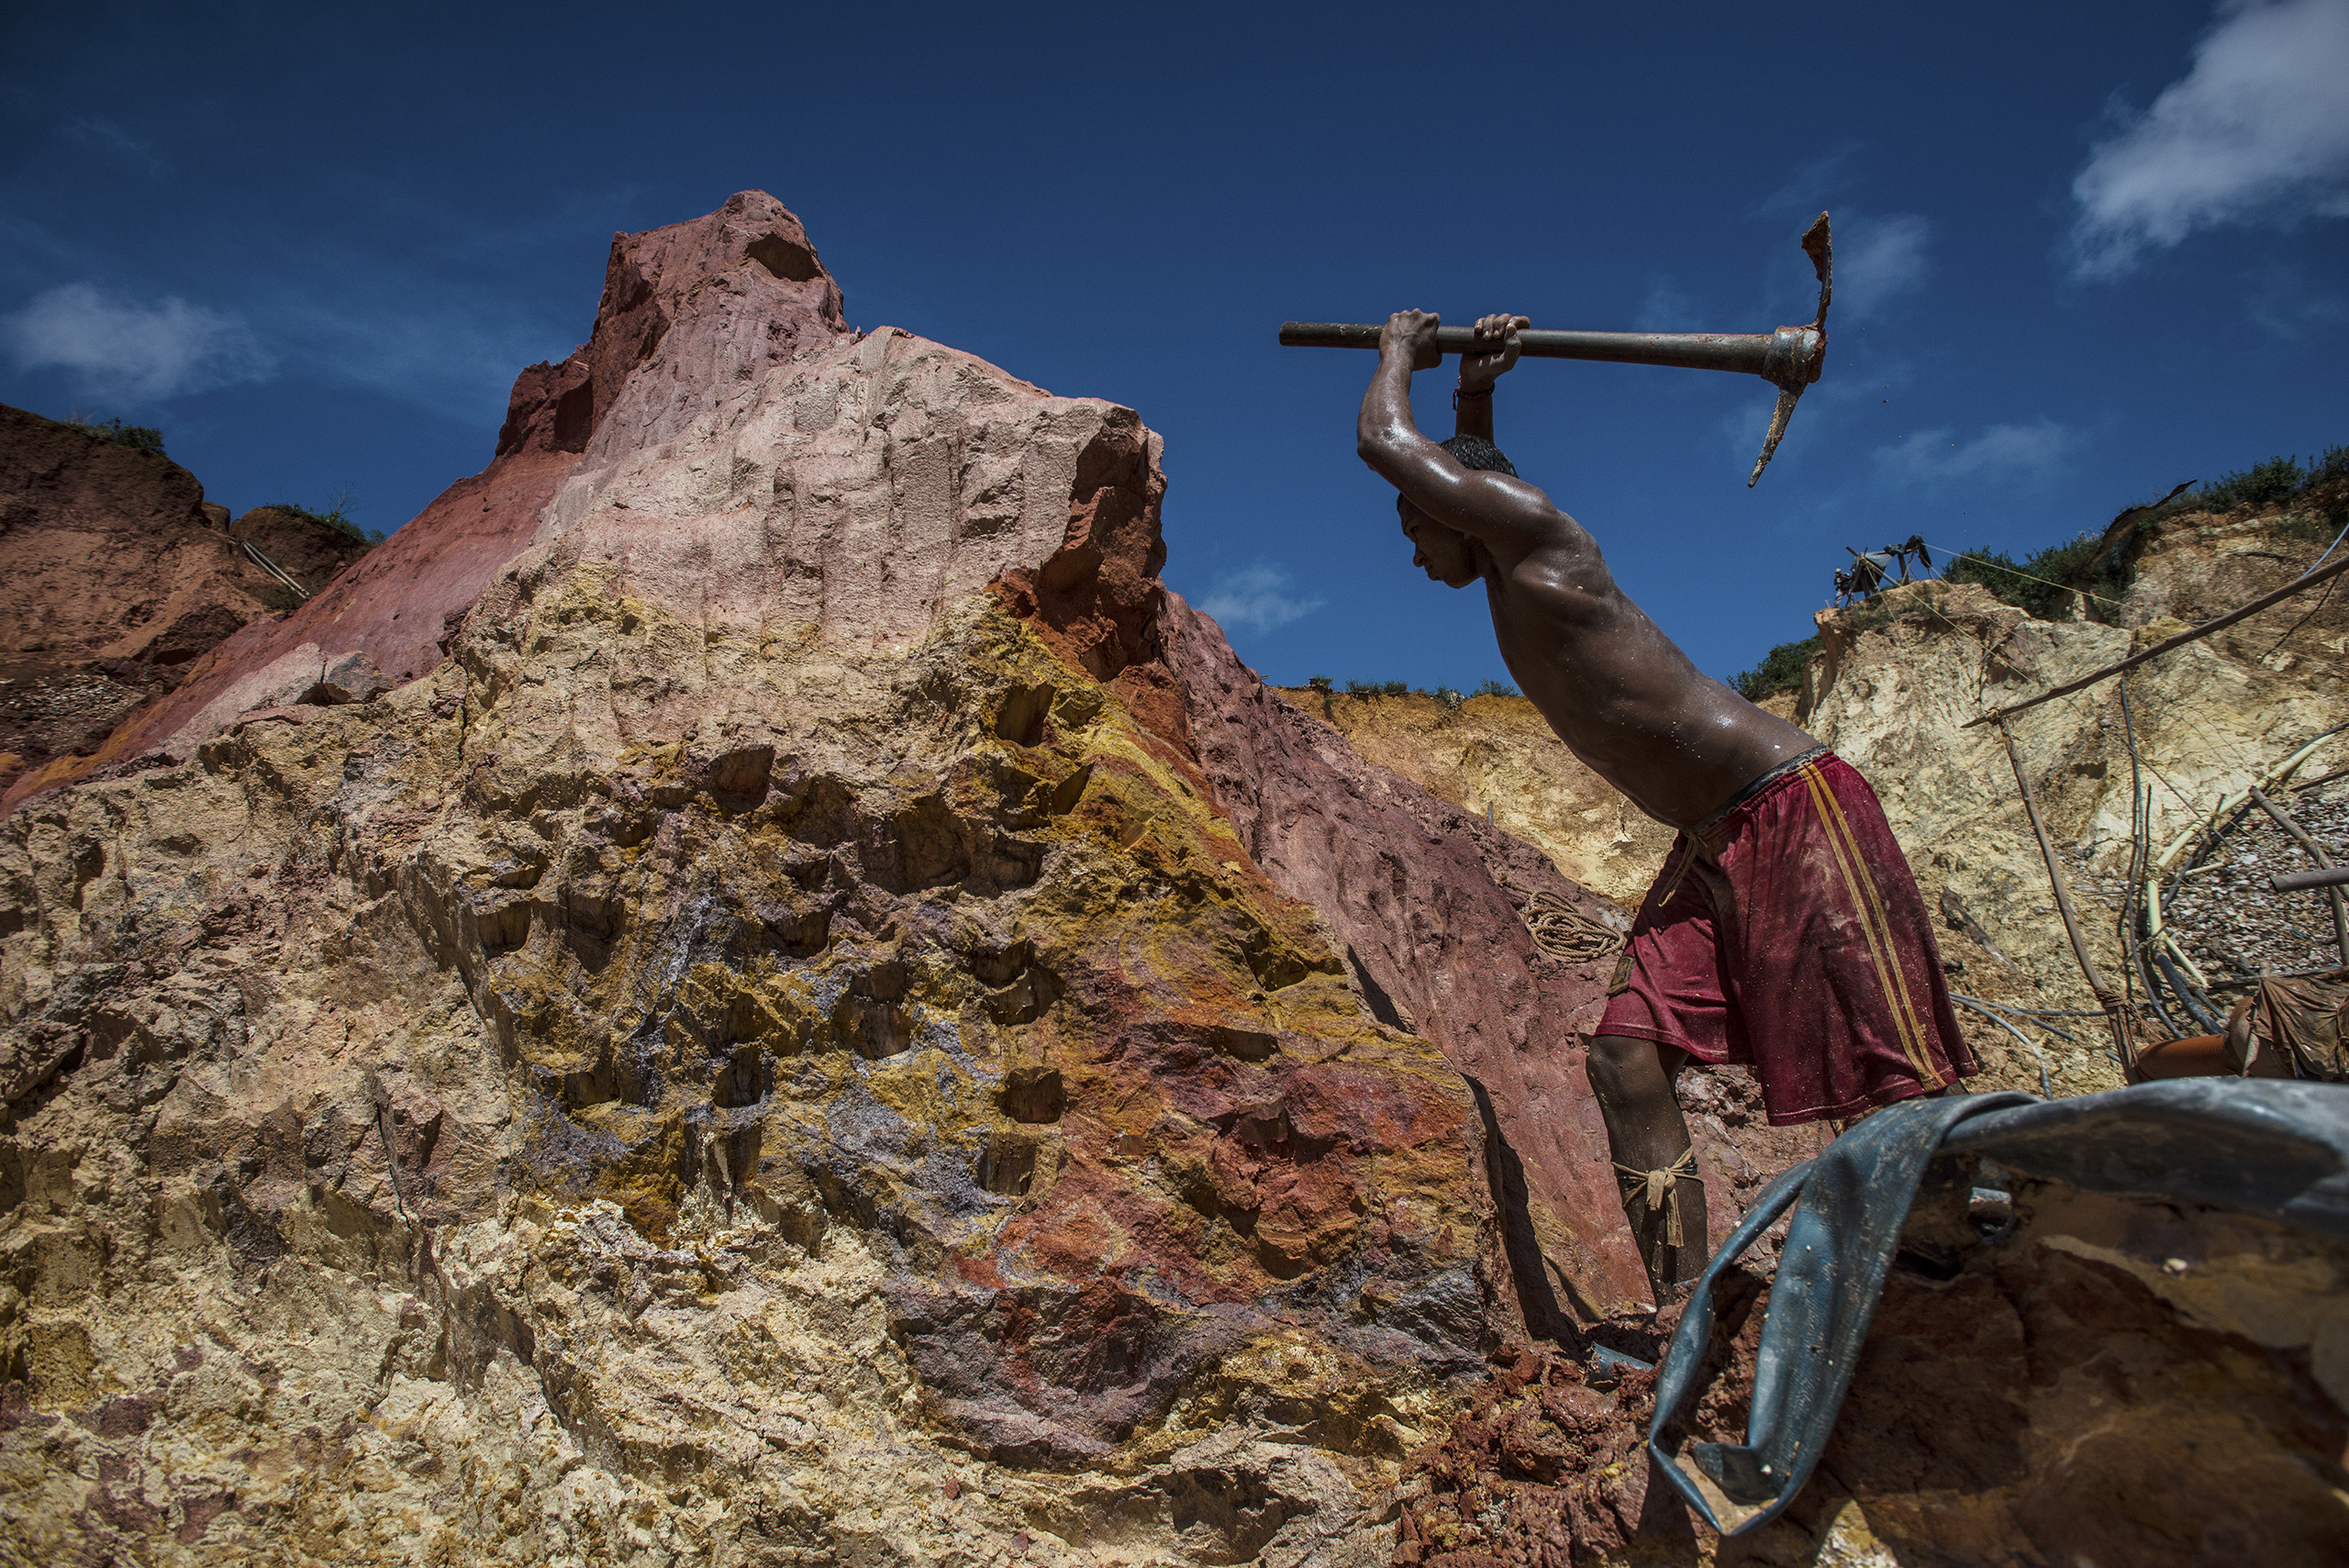 Carlos Freydel mines for gold at the illegal  Cuatro Muertos  mine outside Las Claritas, Venezuela, on July 20, 2016. The cratered economy has sent many Venezuelans to work in the country's illegal gold mines scattered across the jungle, where the primitive conditions have seen malaria return with a vengeance.